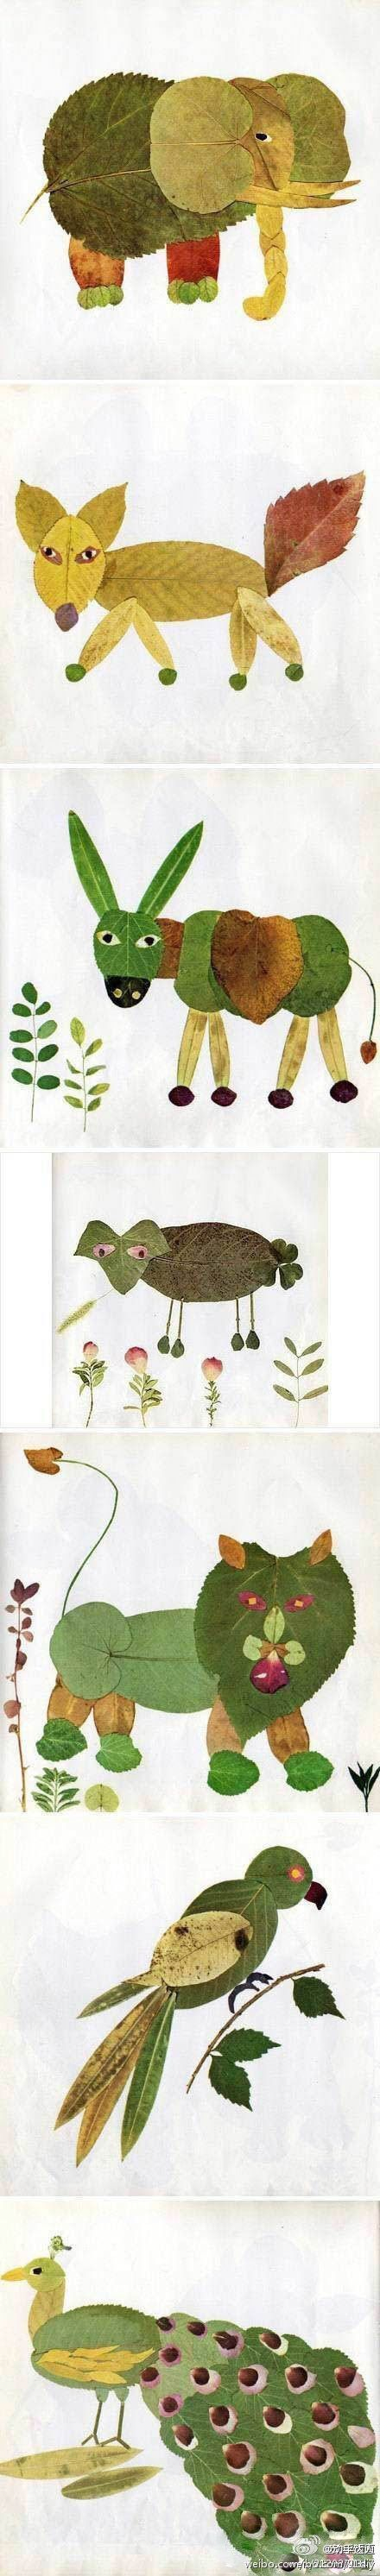 leaf animals - great #autumn art activity to get #kids out of the house or classroom!